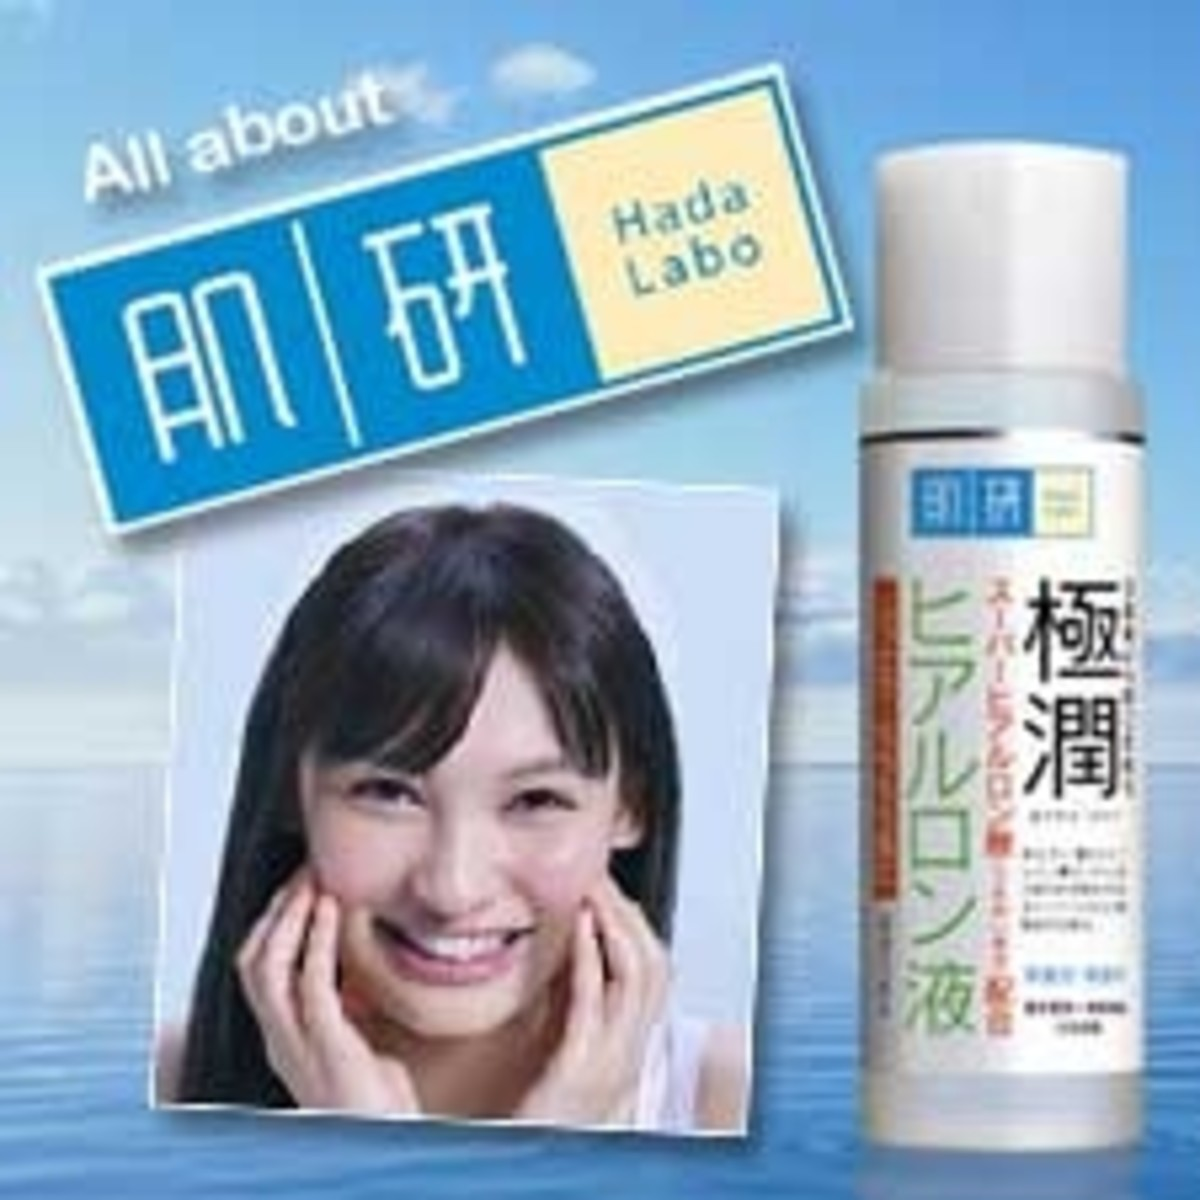 Hada Labo Lotion: The Japanese Skin Care Product That's Crazy Popular in Asia